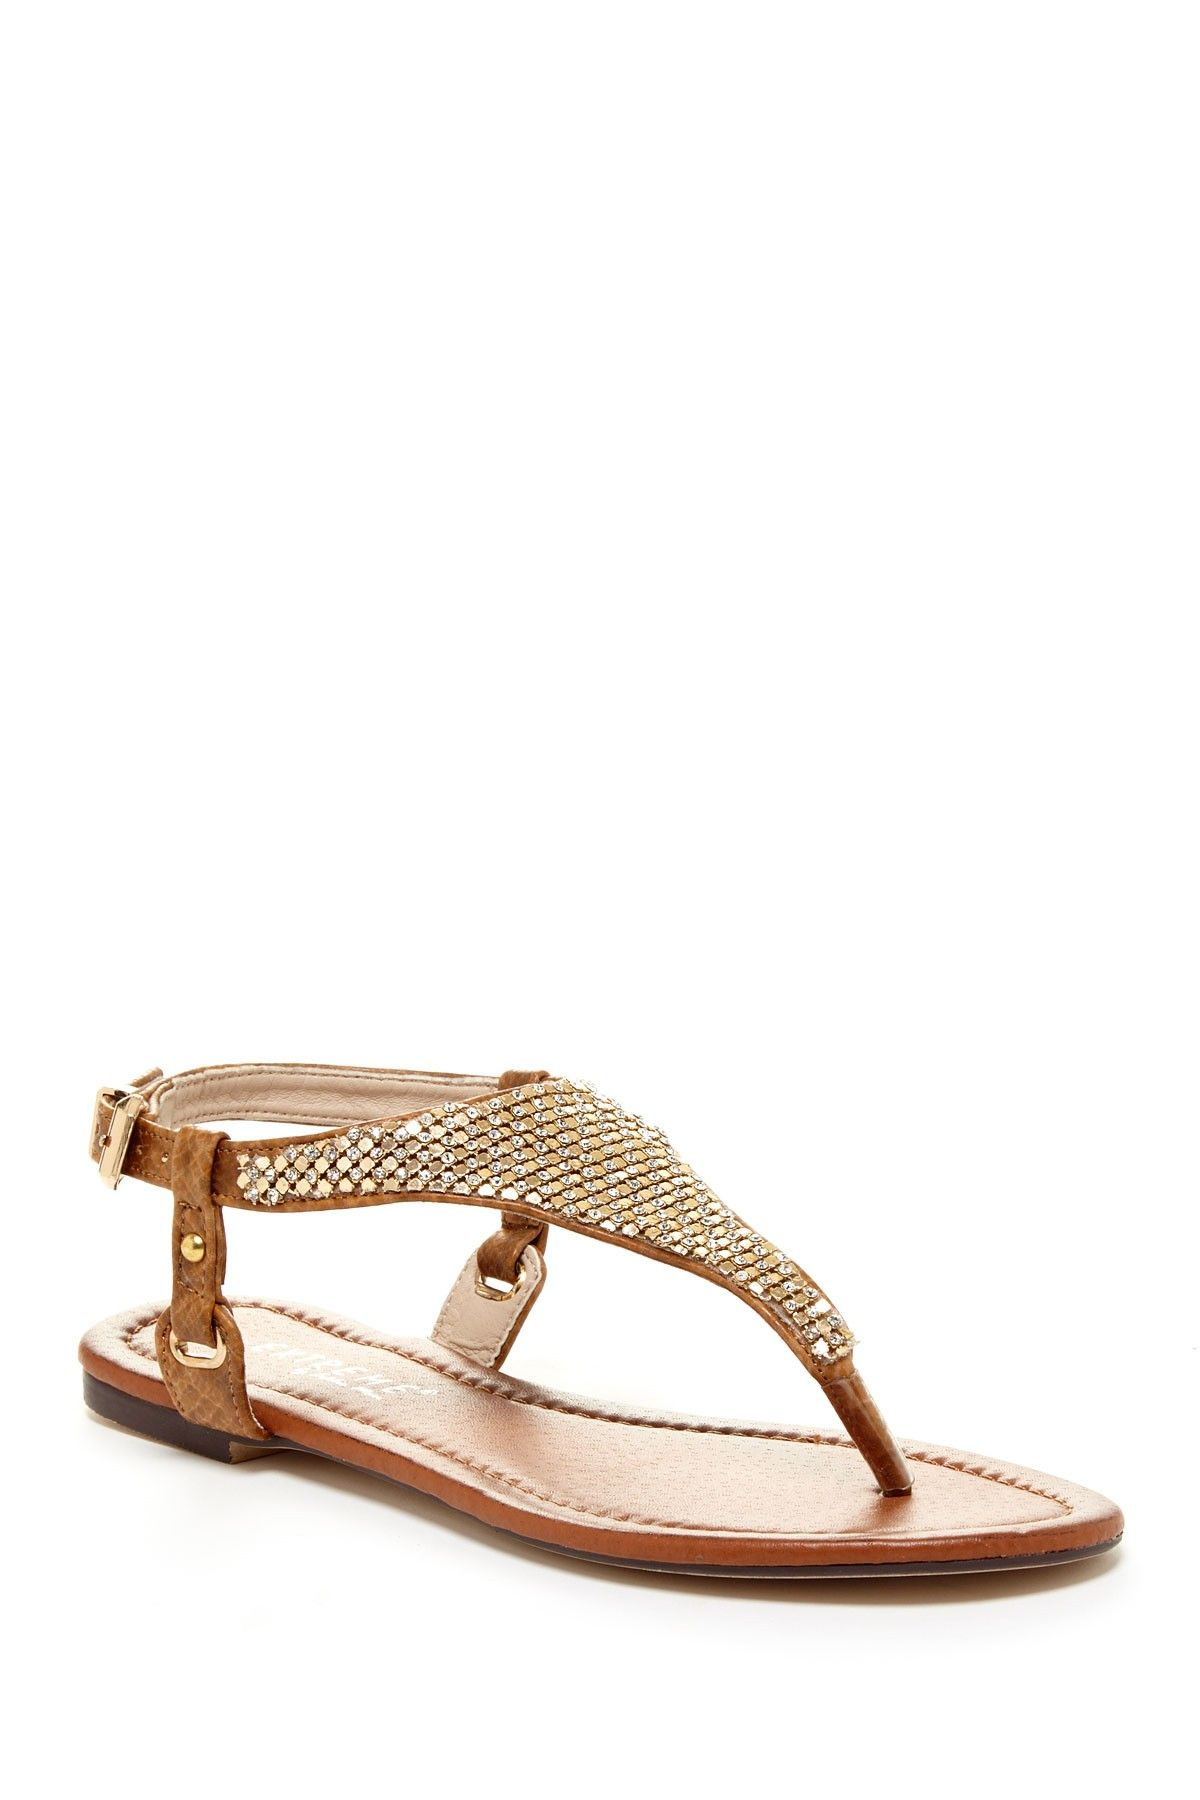 970c94b060f5 brown + gold thong sandals (footwearr